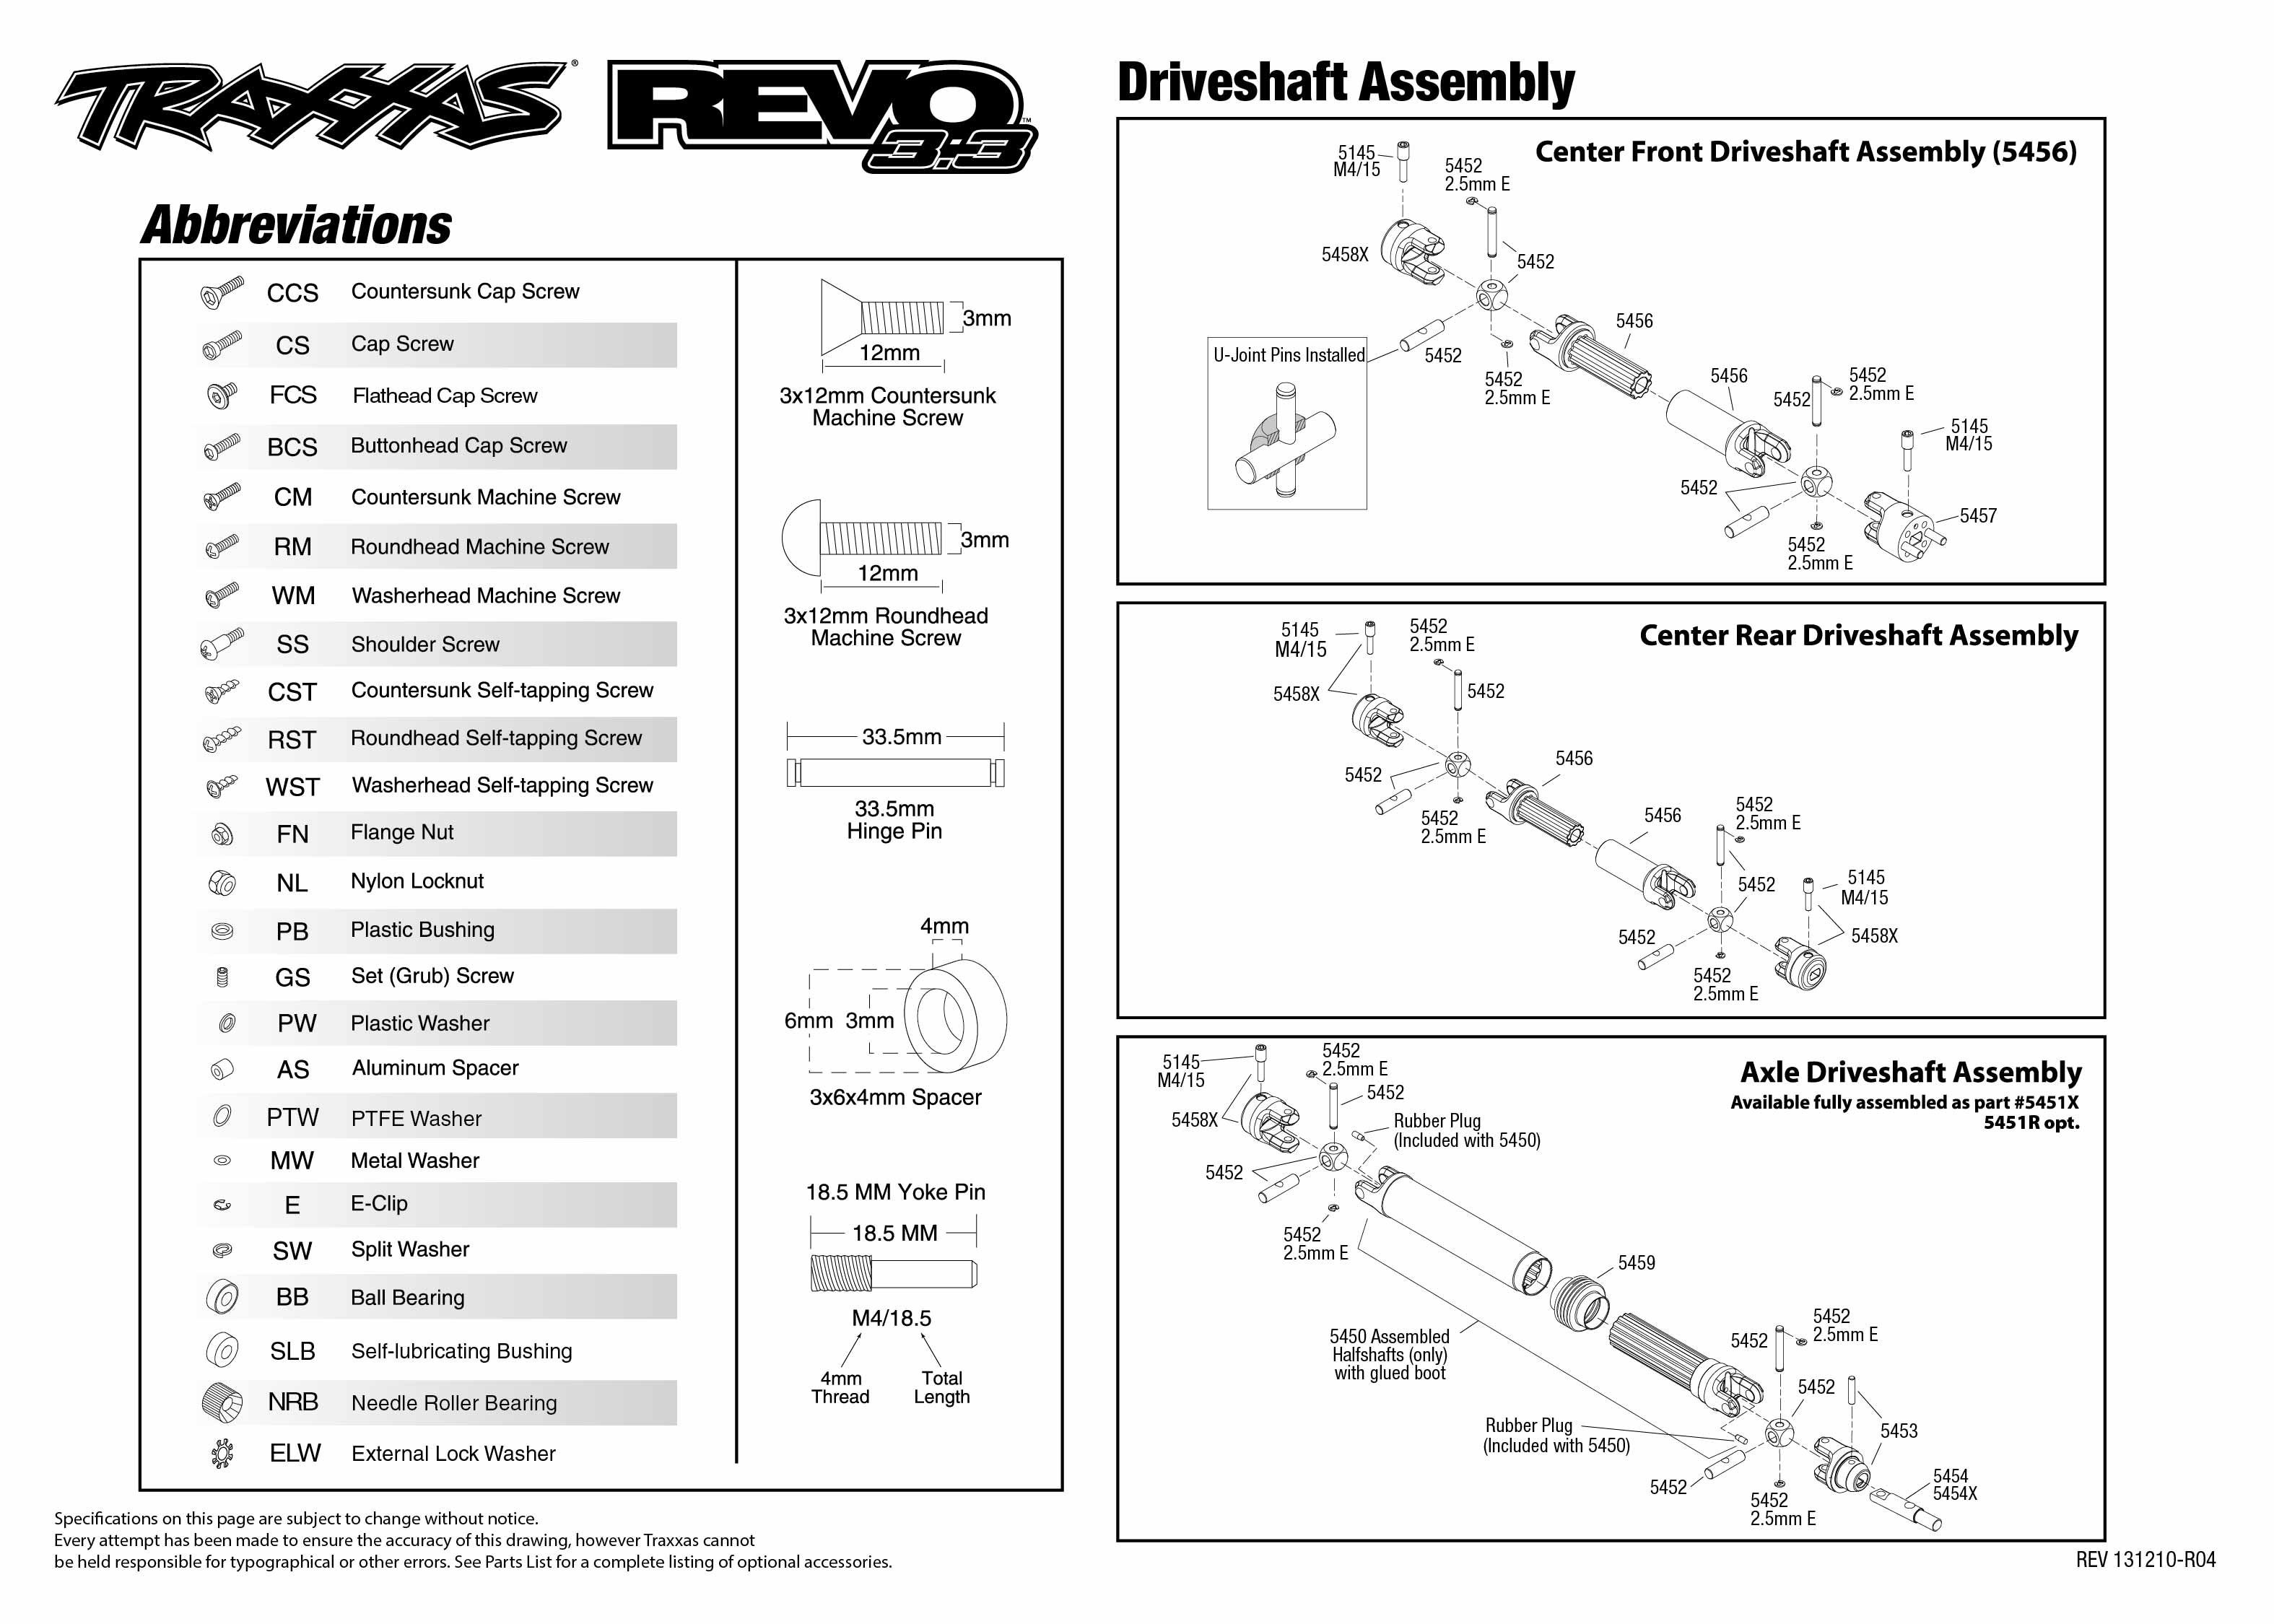 5309_Revo33 TQi exploded views 131210_5309 Driveshafts Assembly diagrams 555312 rsf opel 3 wiring diagram google rsf opel 3 traxxas revo 3.3 wiring diagram at honlapkeszites.co